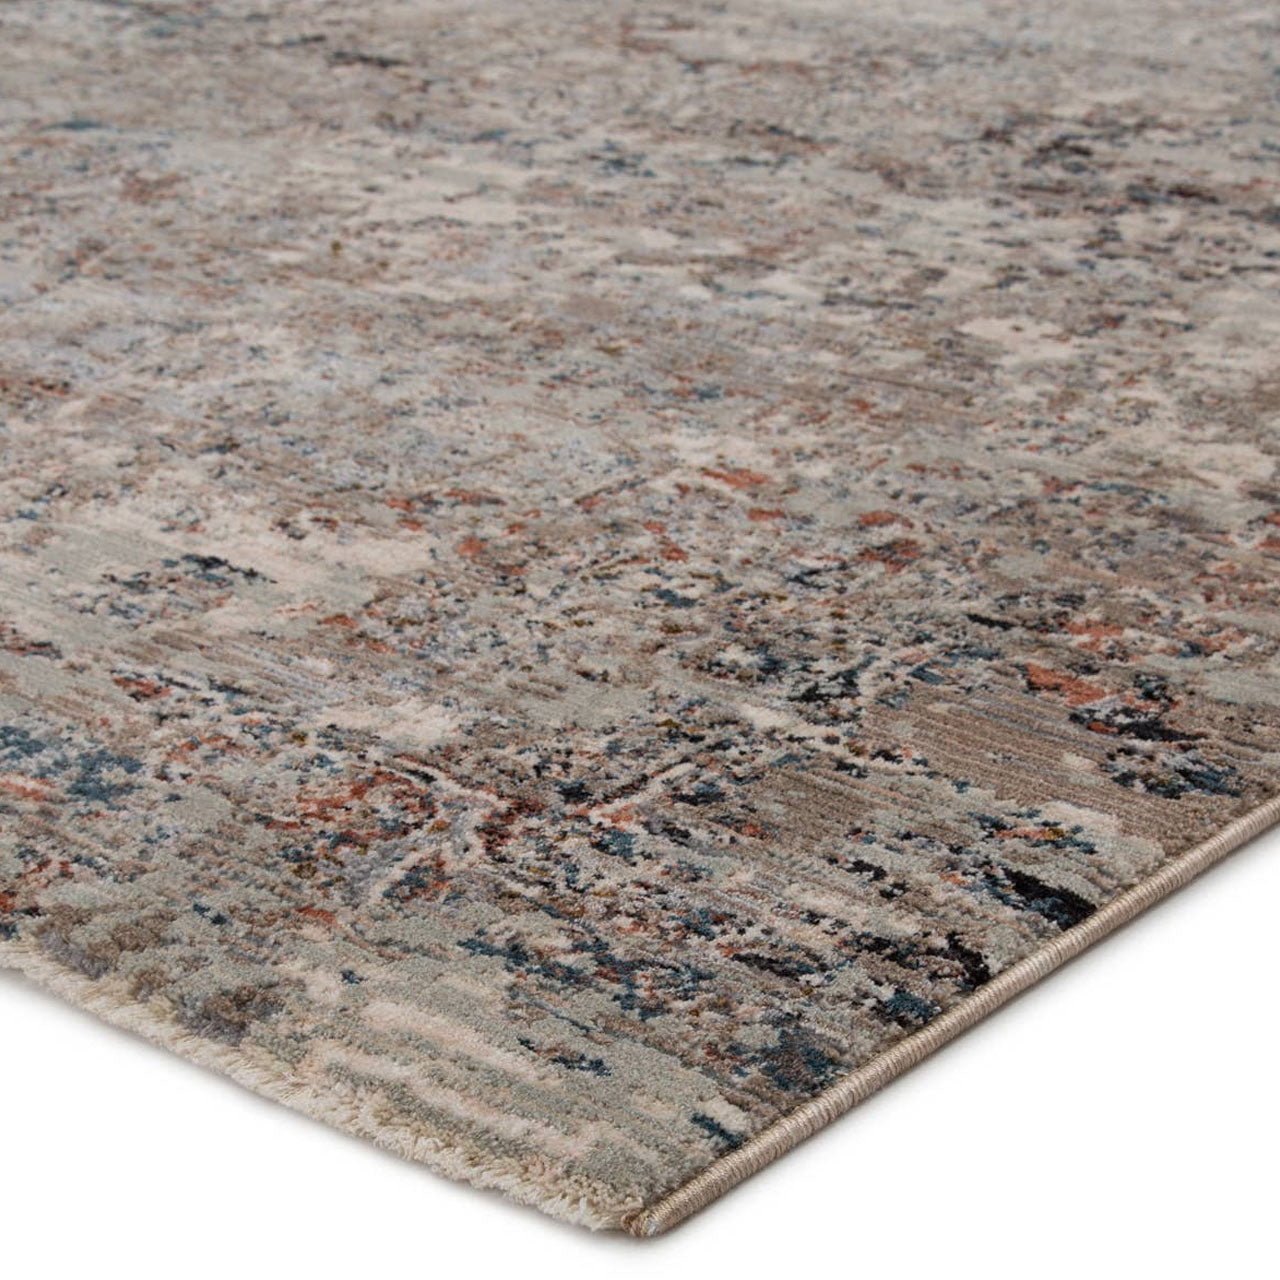 Tiffany Hunter Home & Design Center Power-Loomed Rugs for Sale